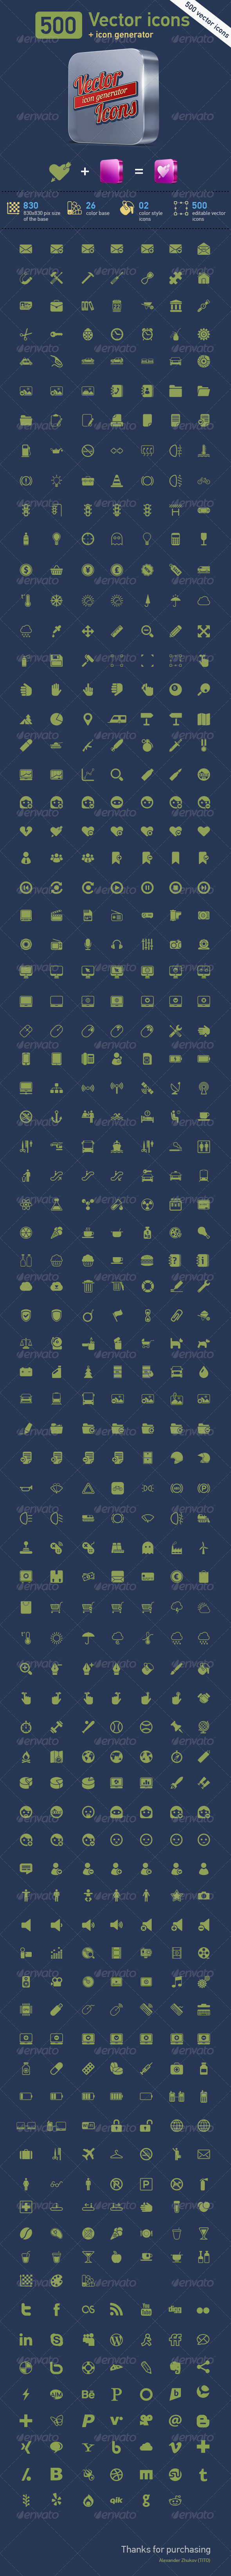 500 Vector Icons + Icon Generator - Web Icons